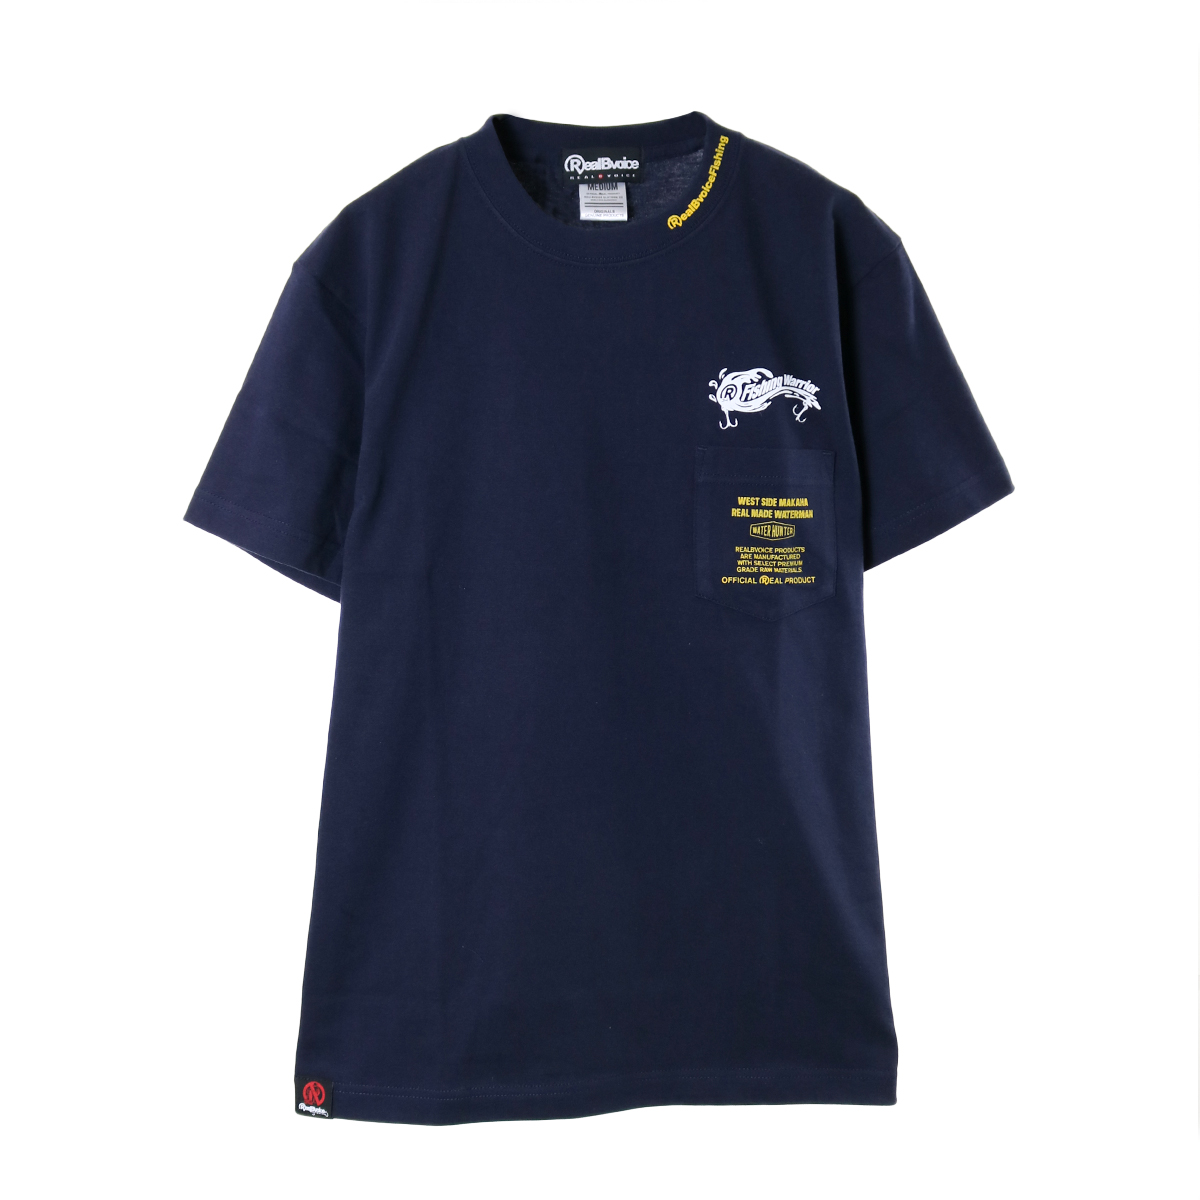 REAL ANGLERS T-SHIRT